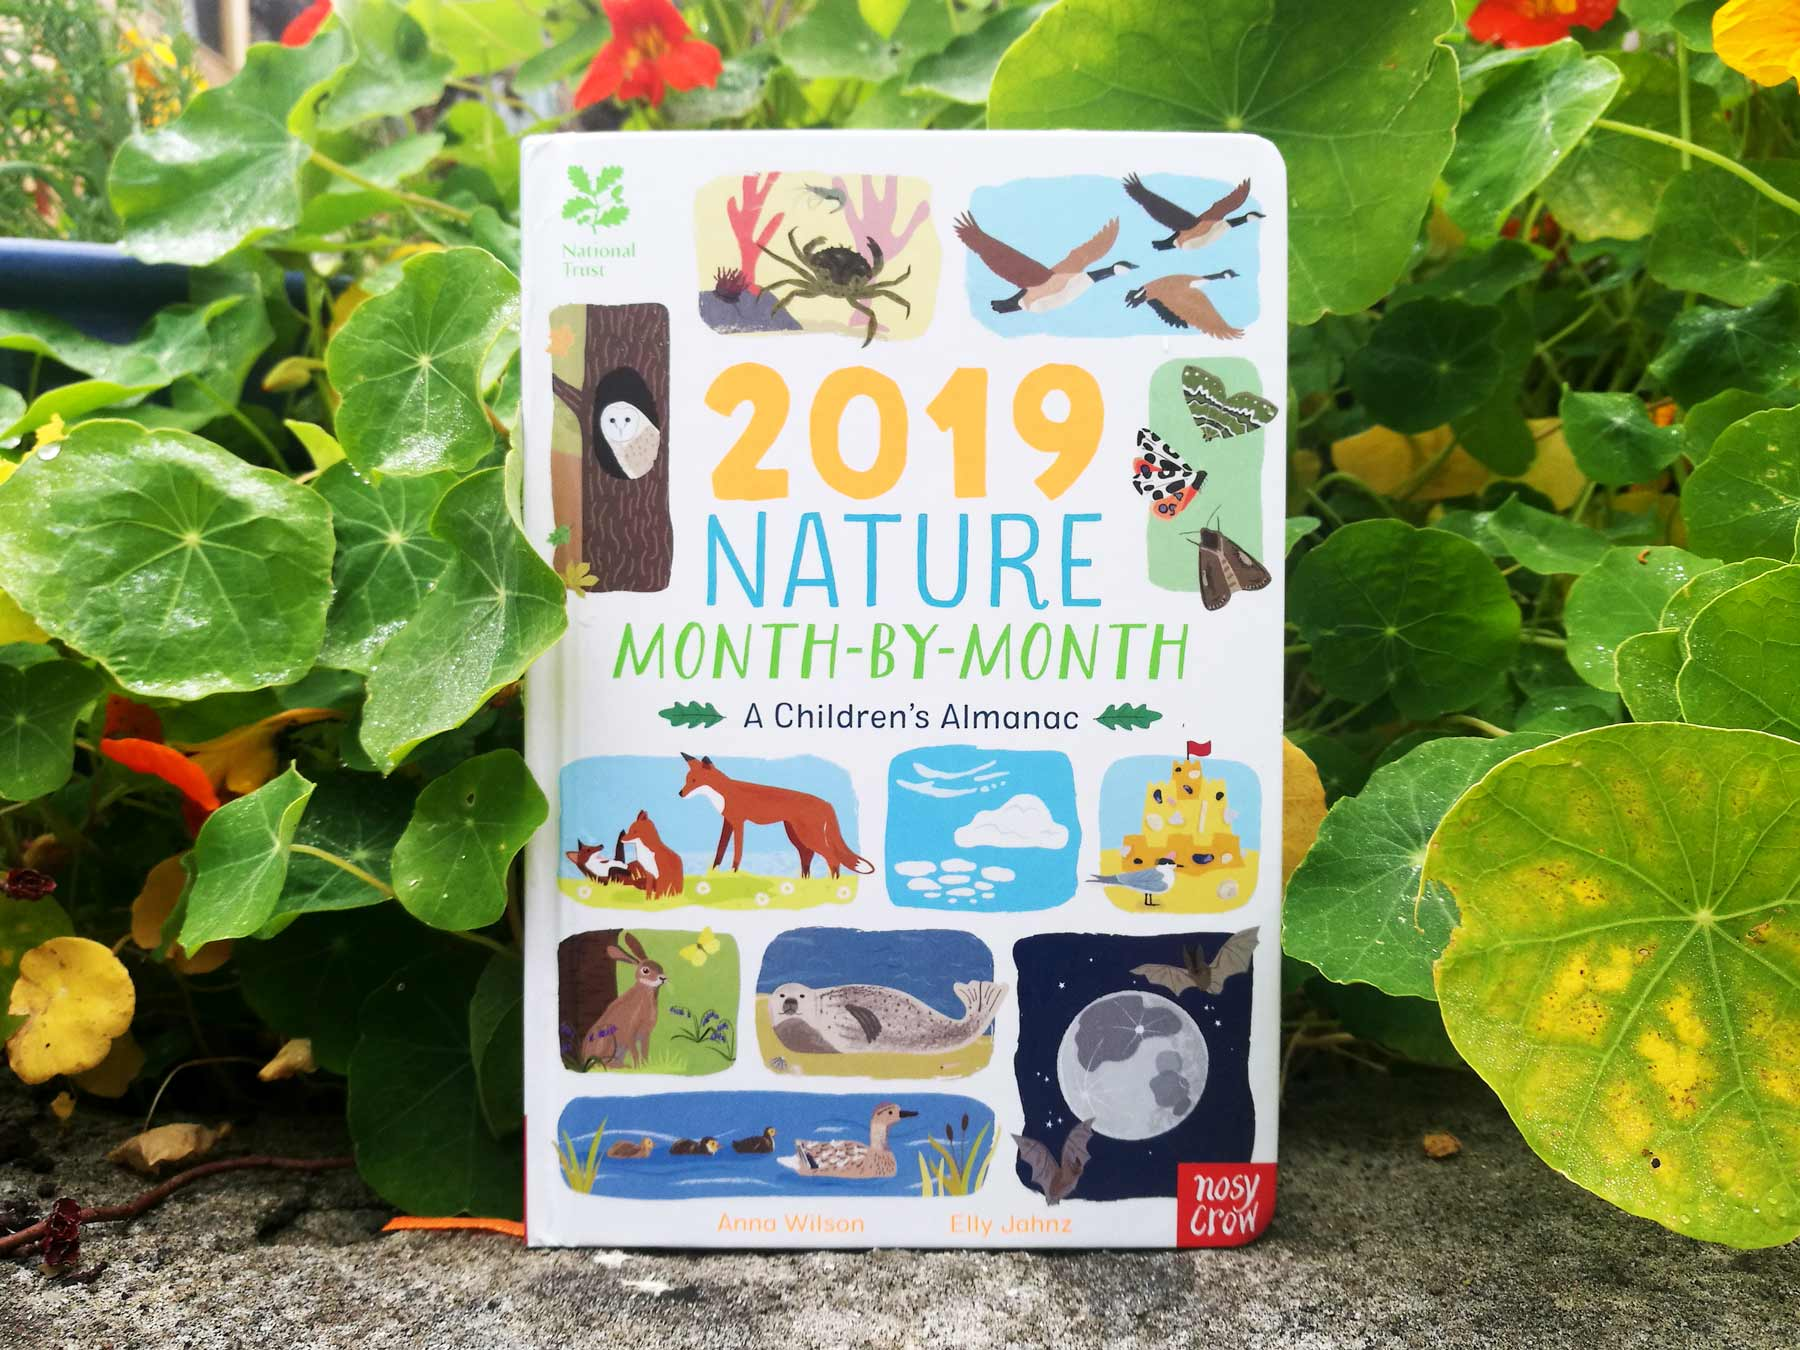 2019 Nature Month by Month portfolio cover image